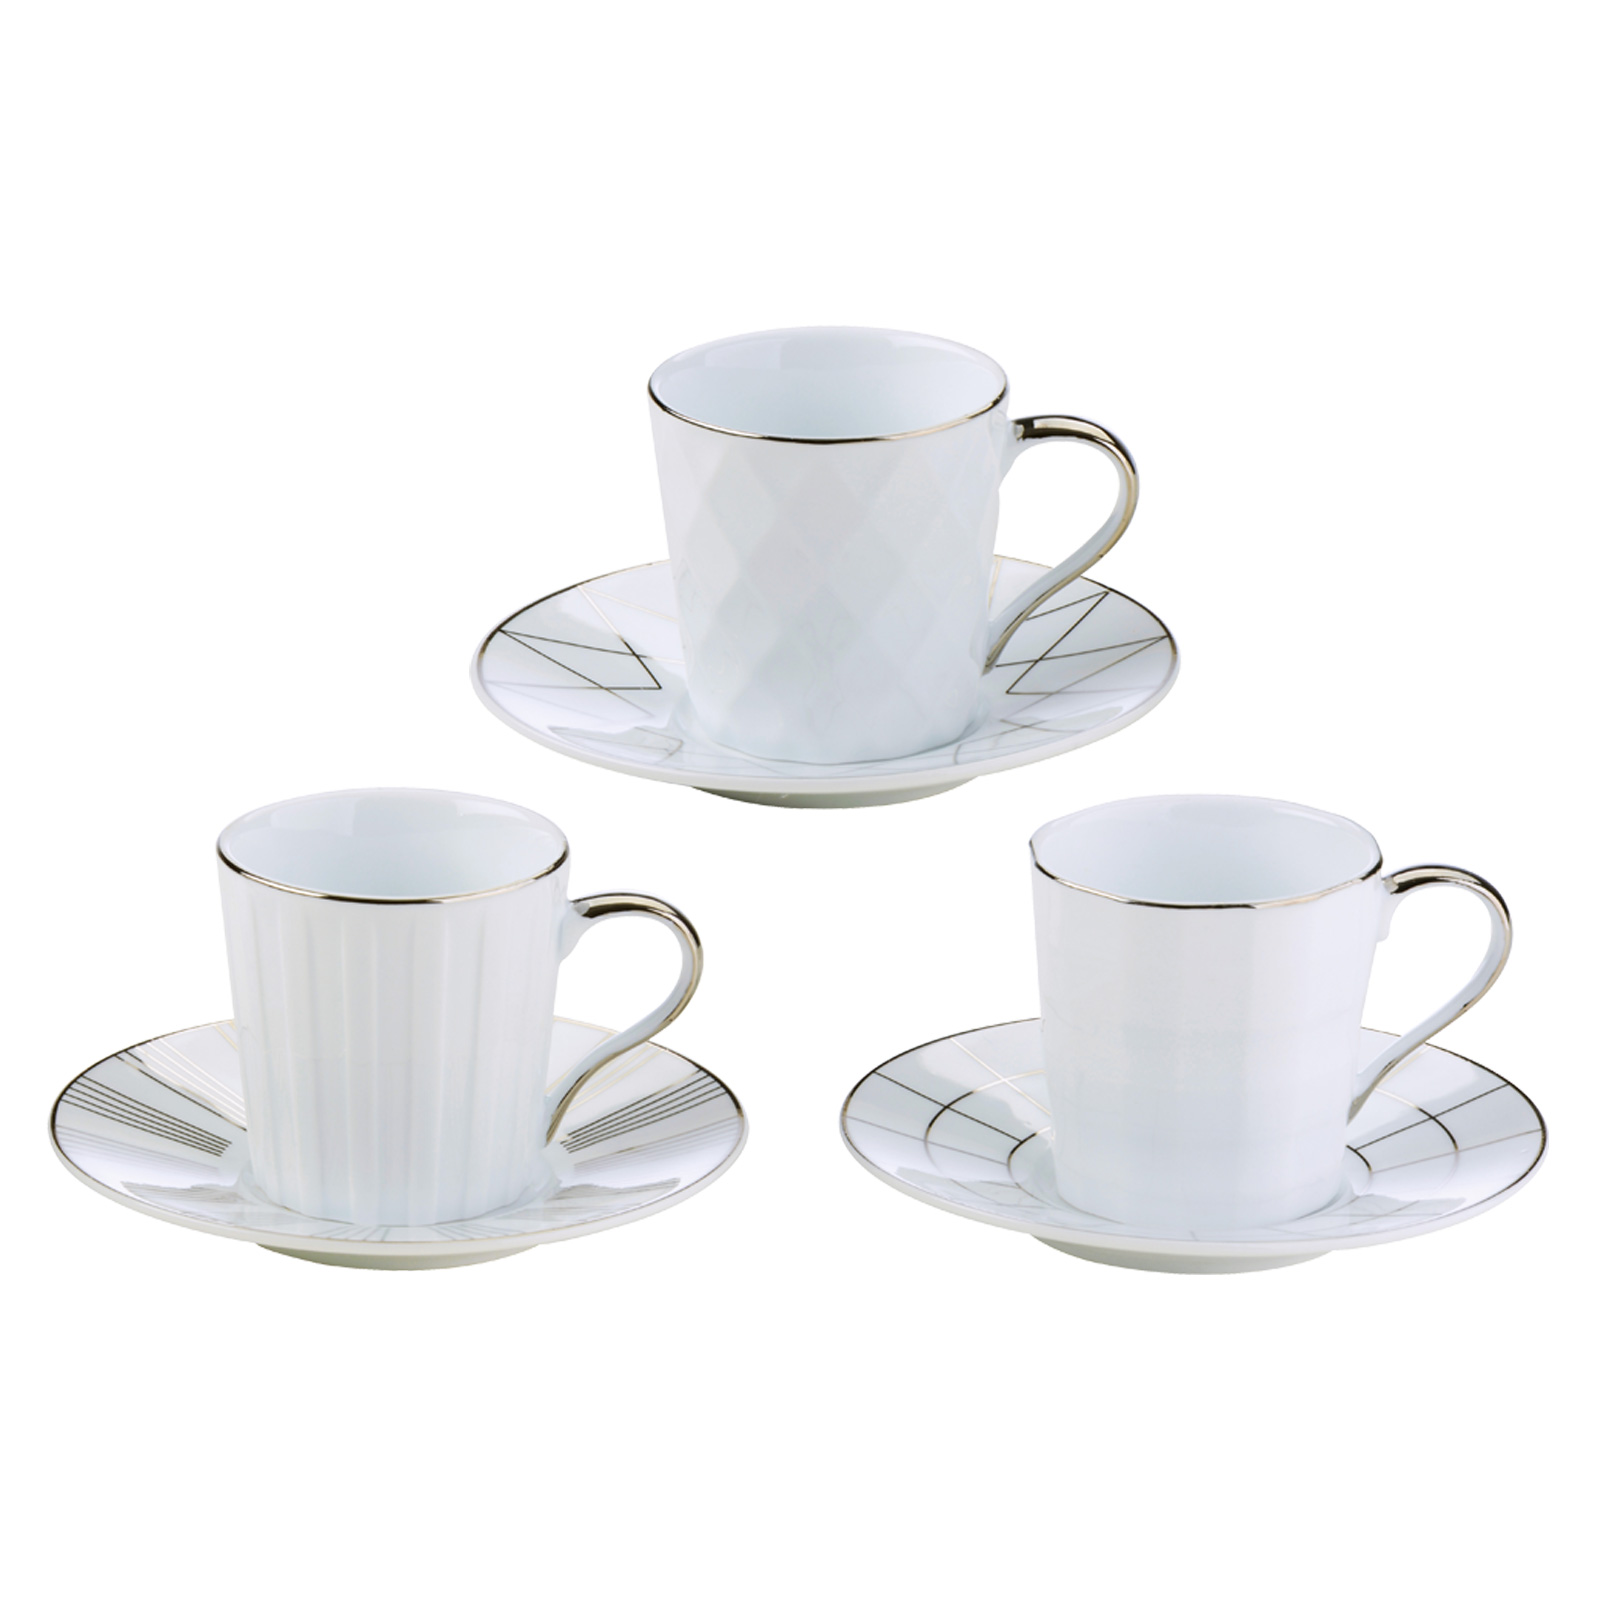 Set of 3 Lux Espresso Cups & Saucers Silver by BIA